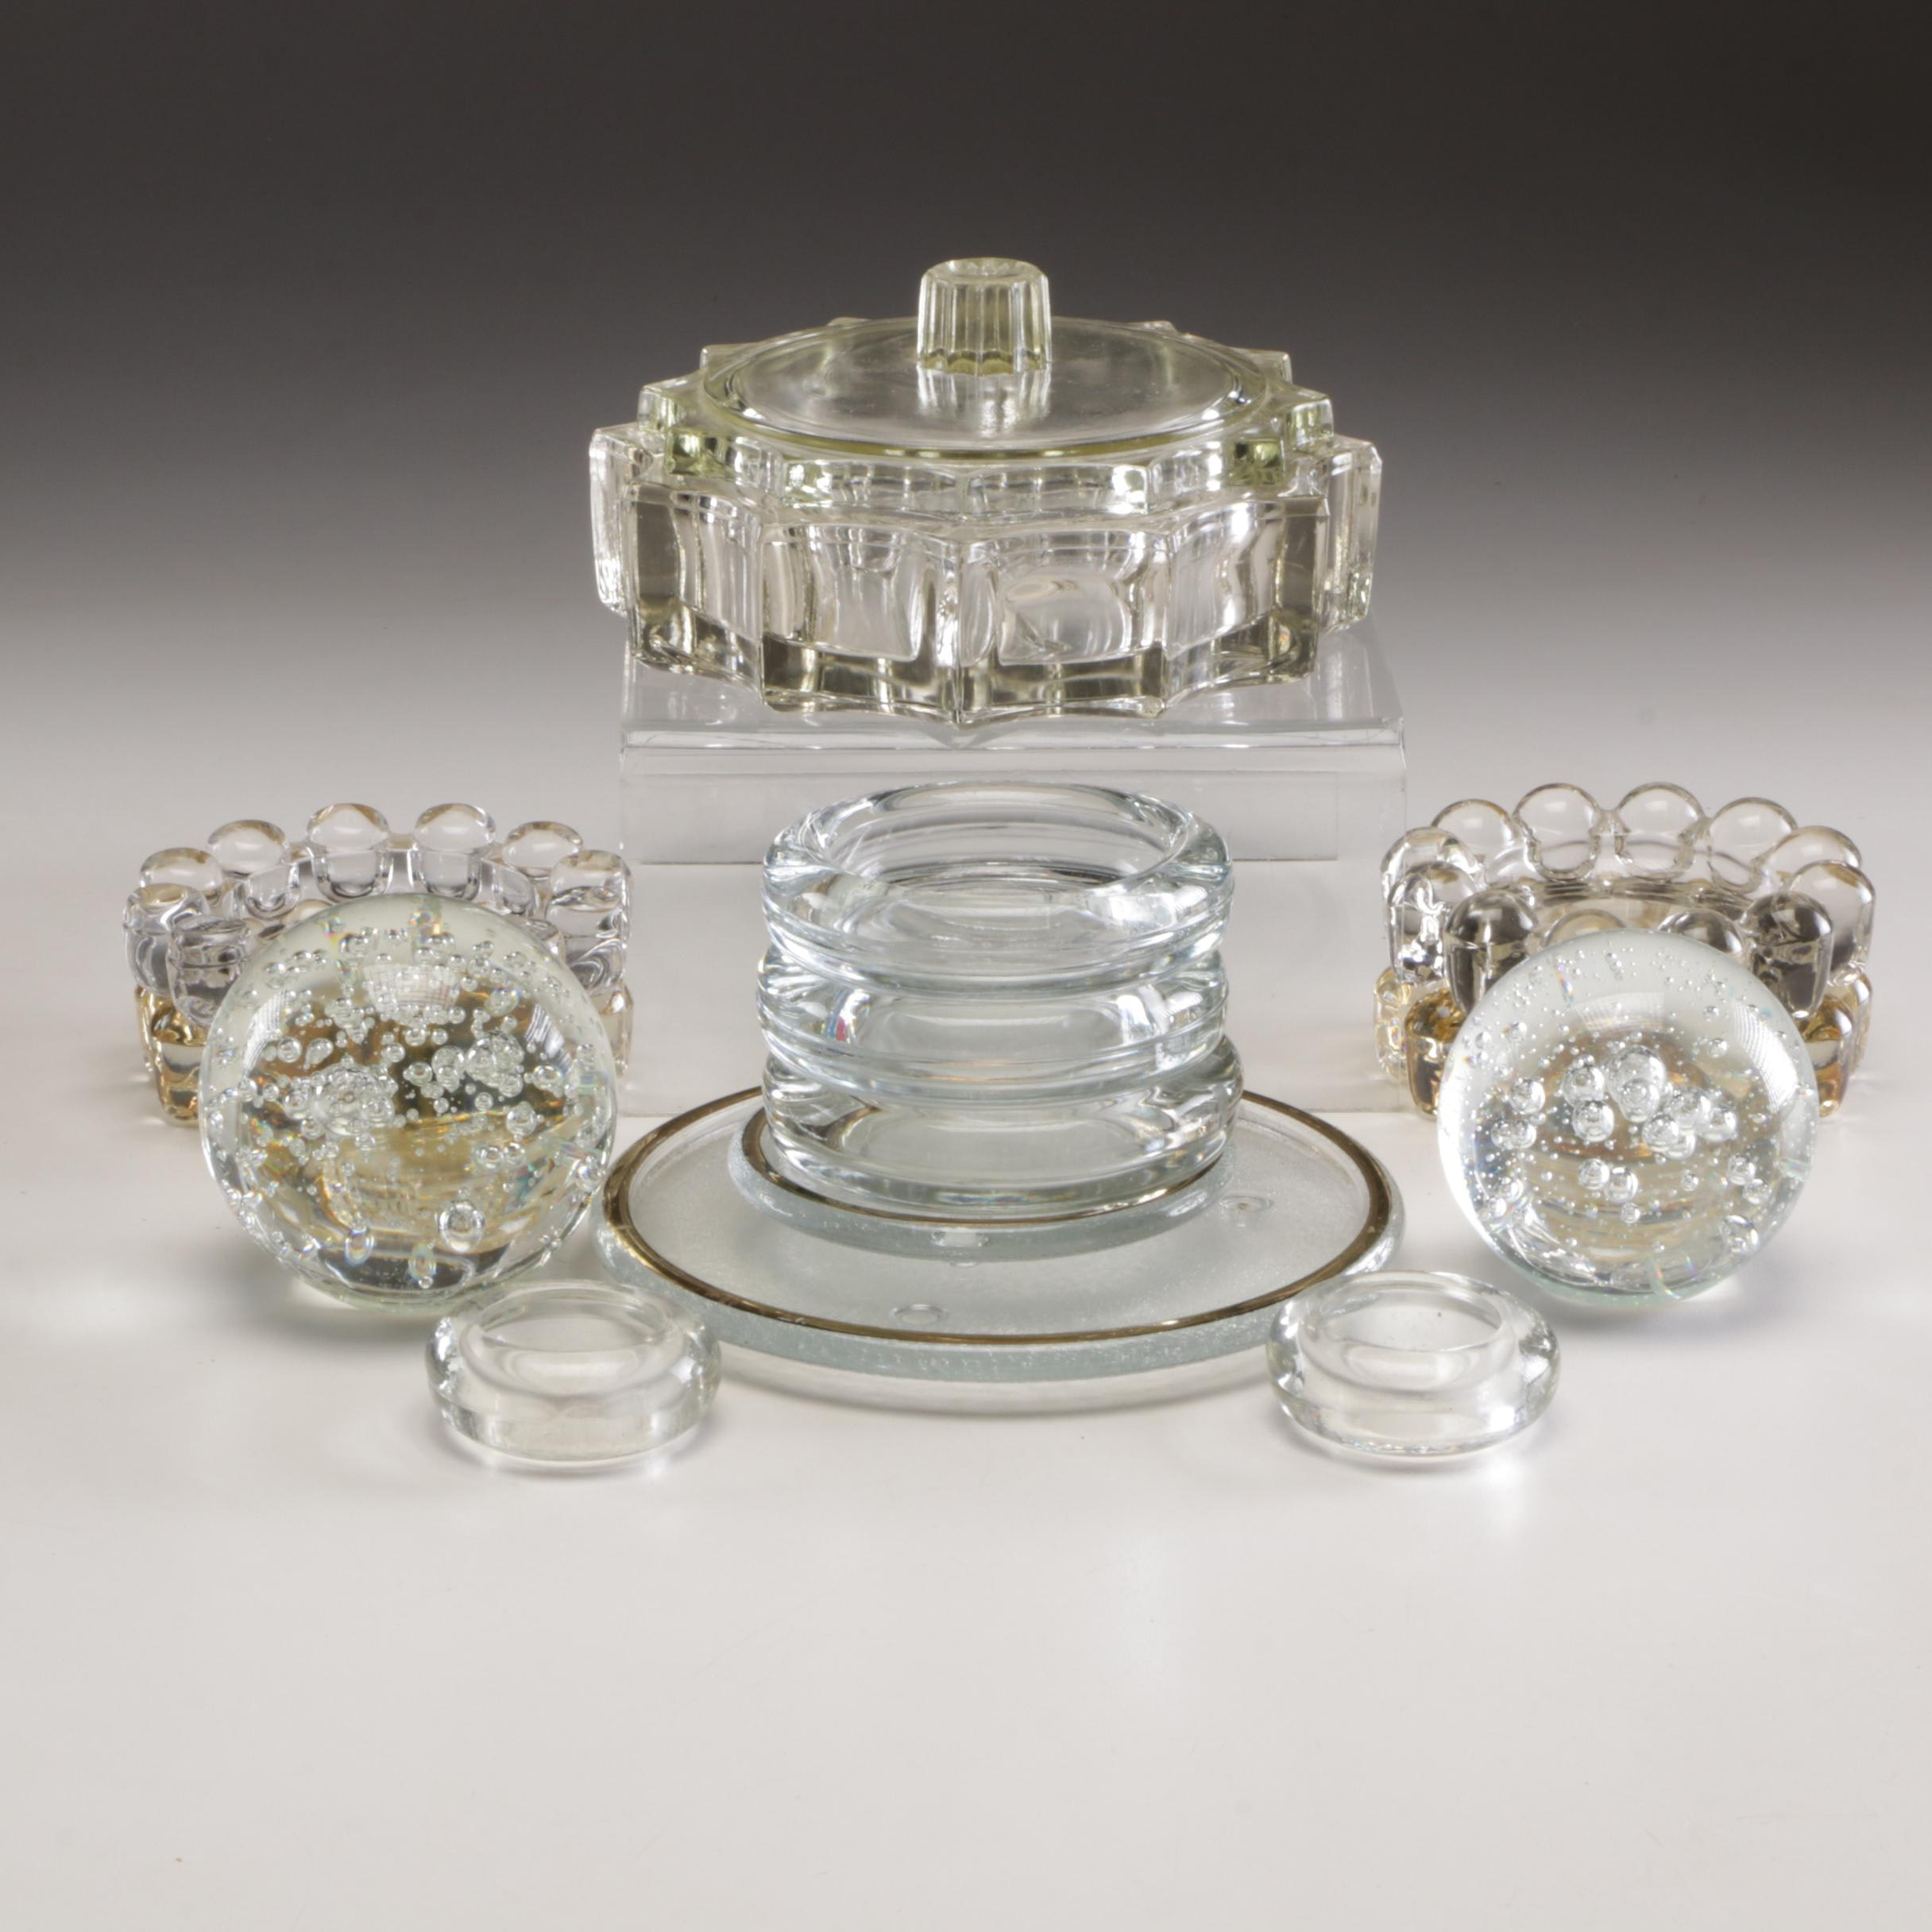 Grouping of Glass Trivets and Tableware and Crystal Paperweights